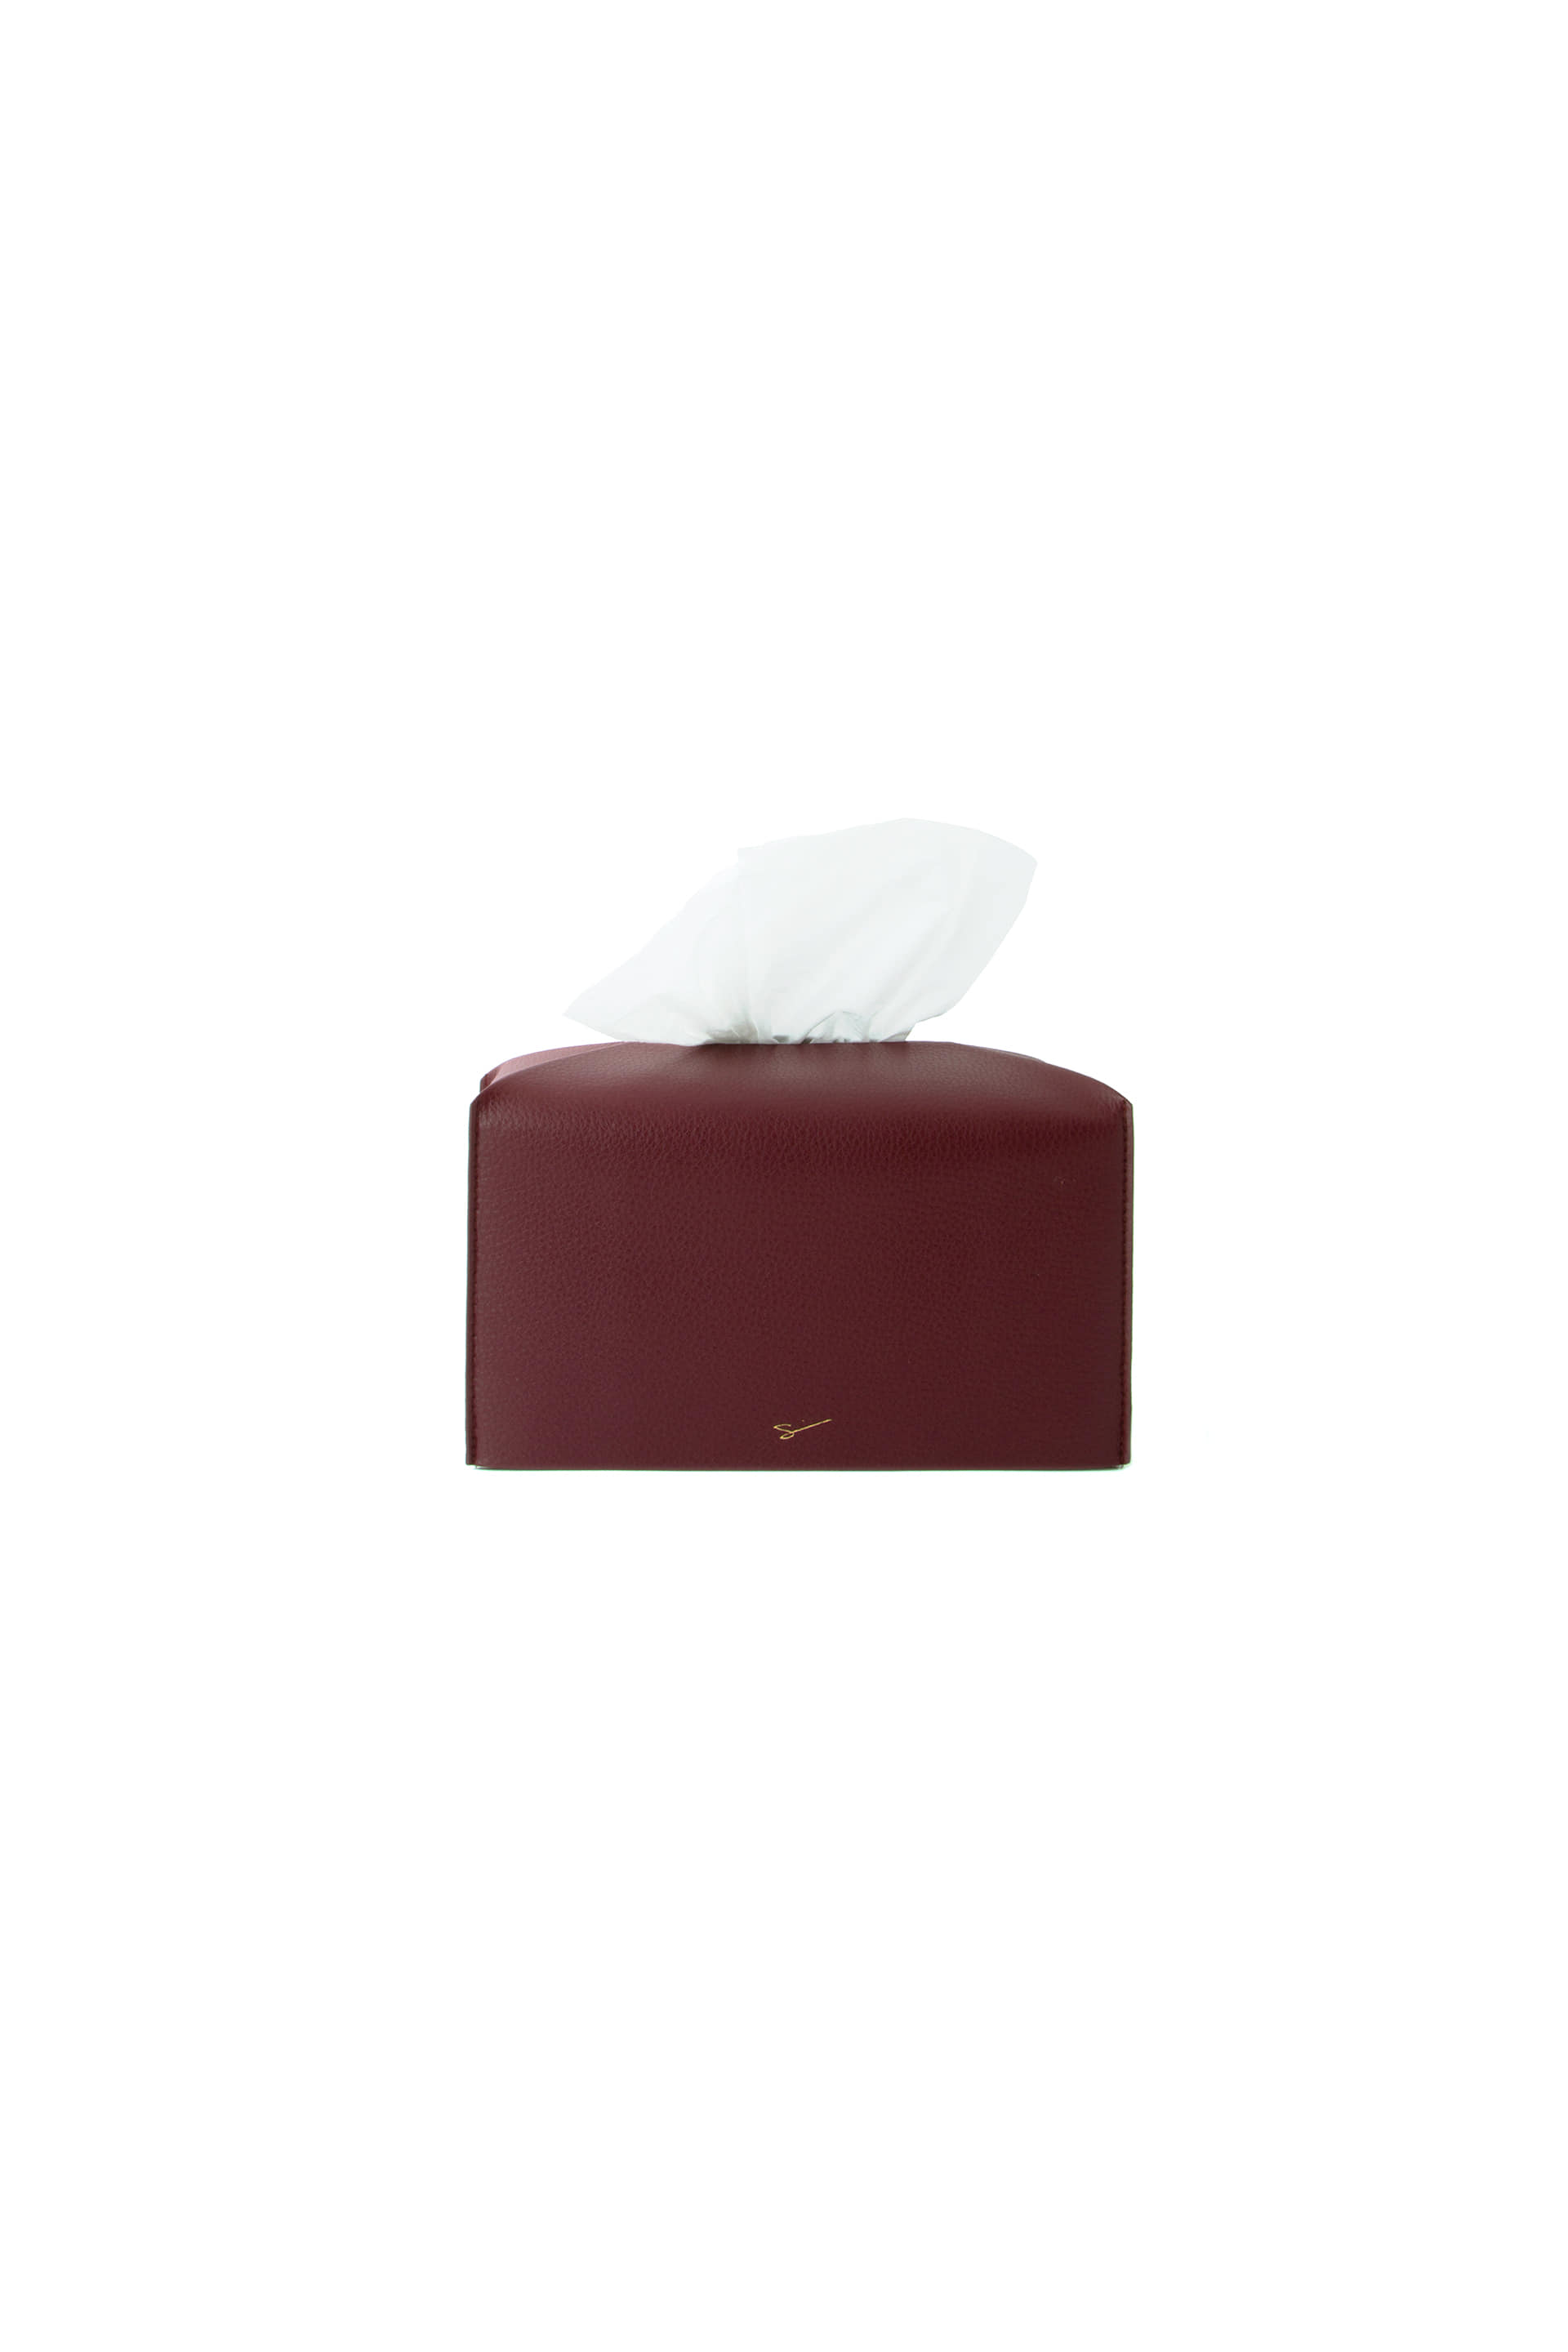 TISSUE CASE L 17 Vino Wine